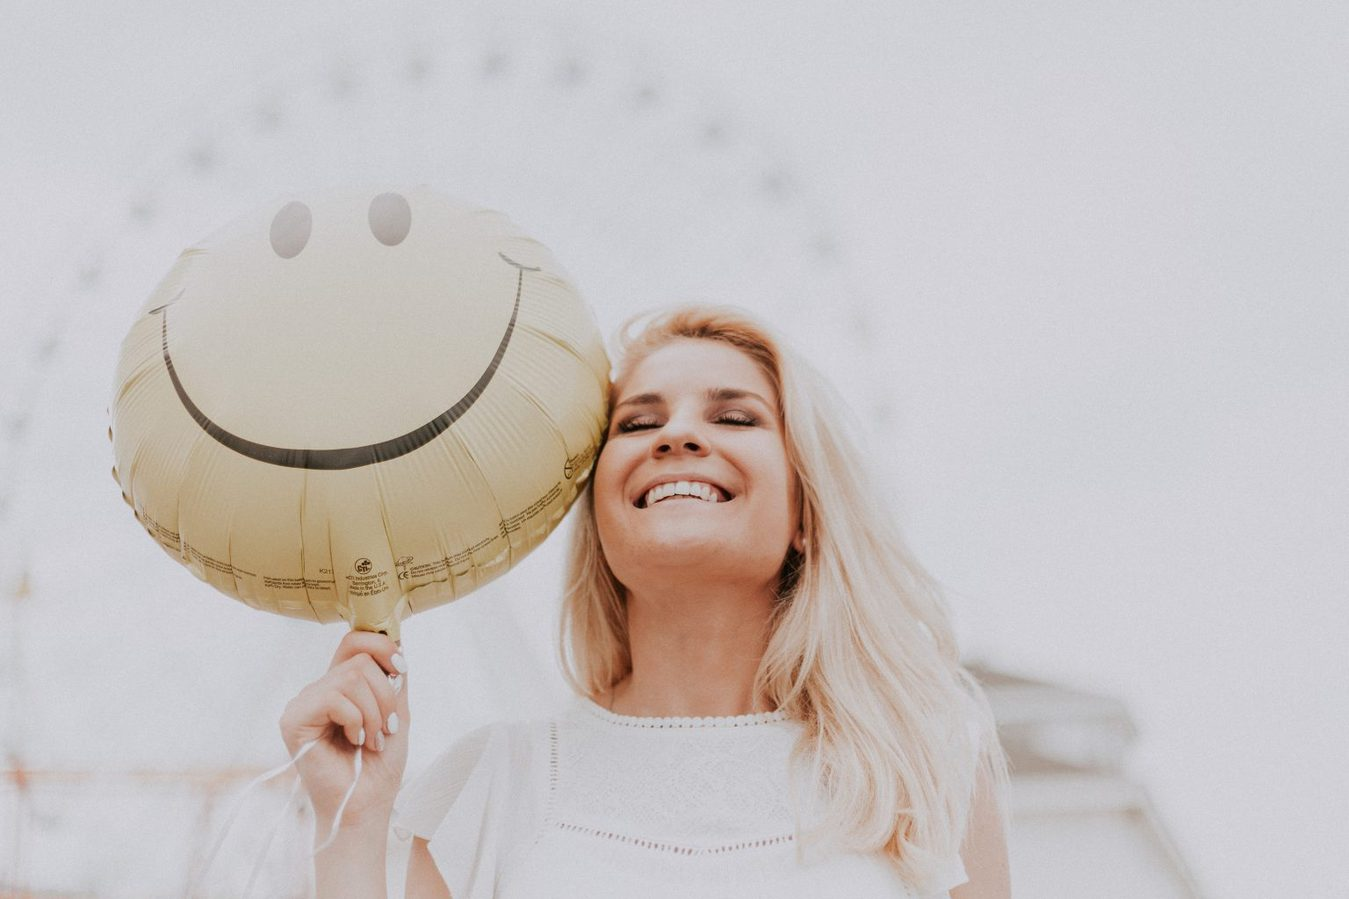 woman holding smiling emoji balloon and laughing